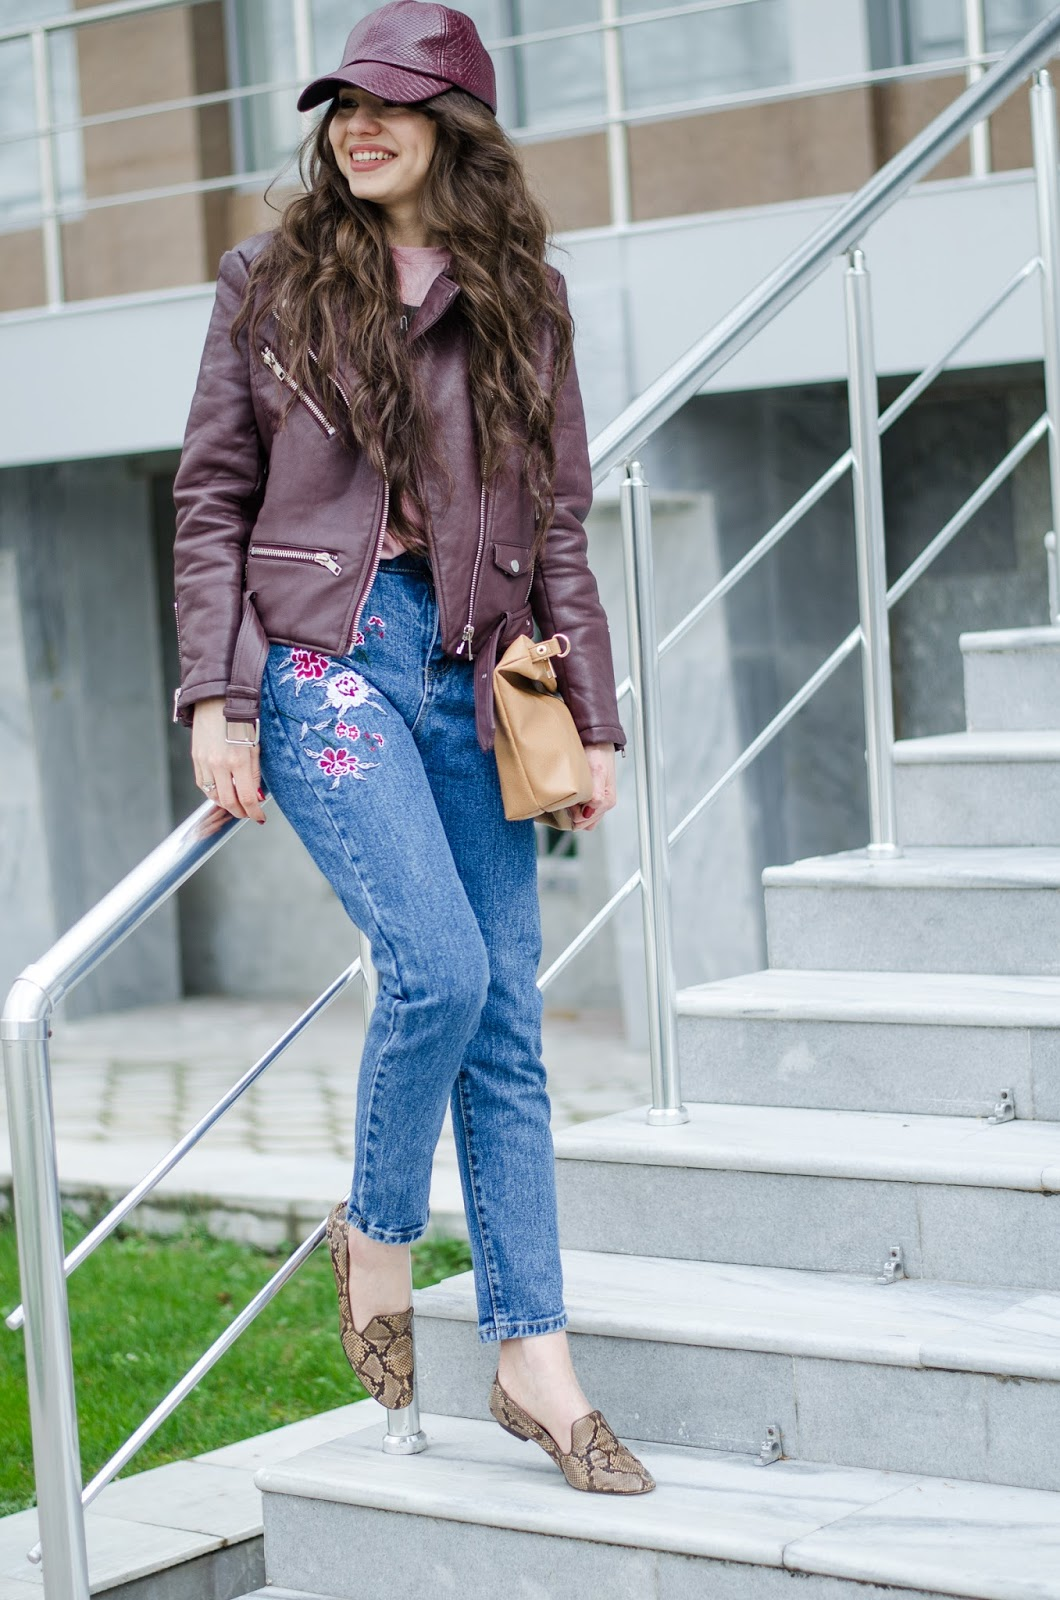 fashion blogger diyorasnotes diyora beta jeans with embroidery pink shirt leather jacket zara slippers